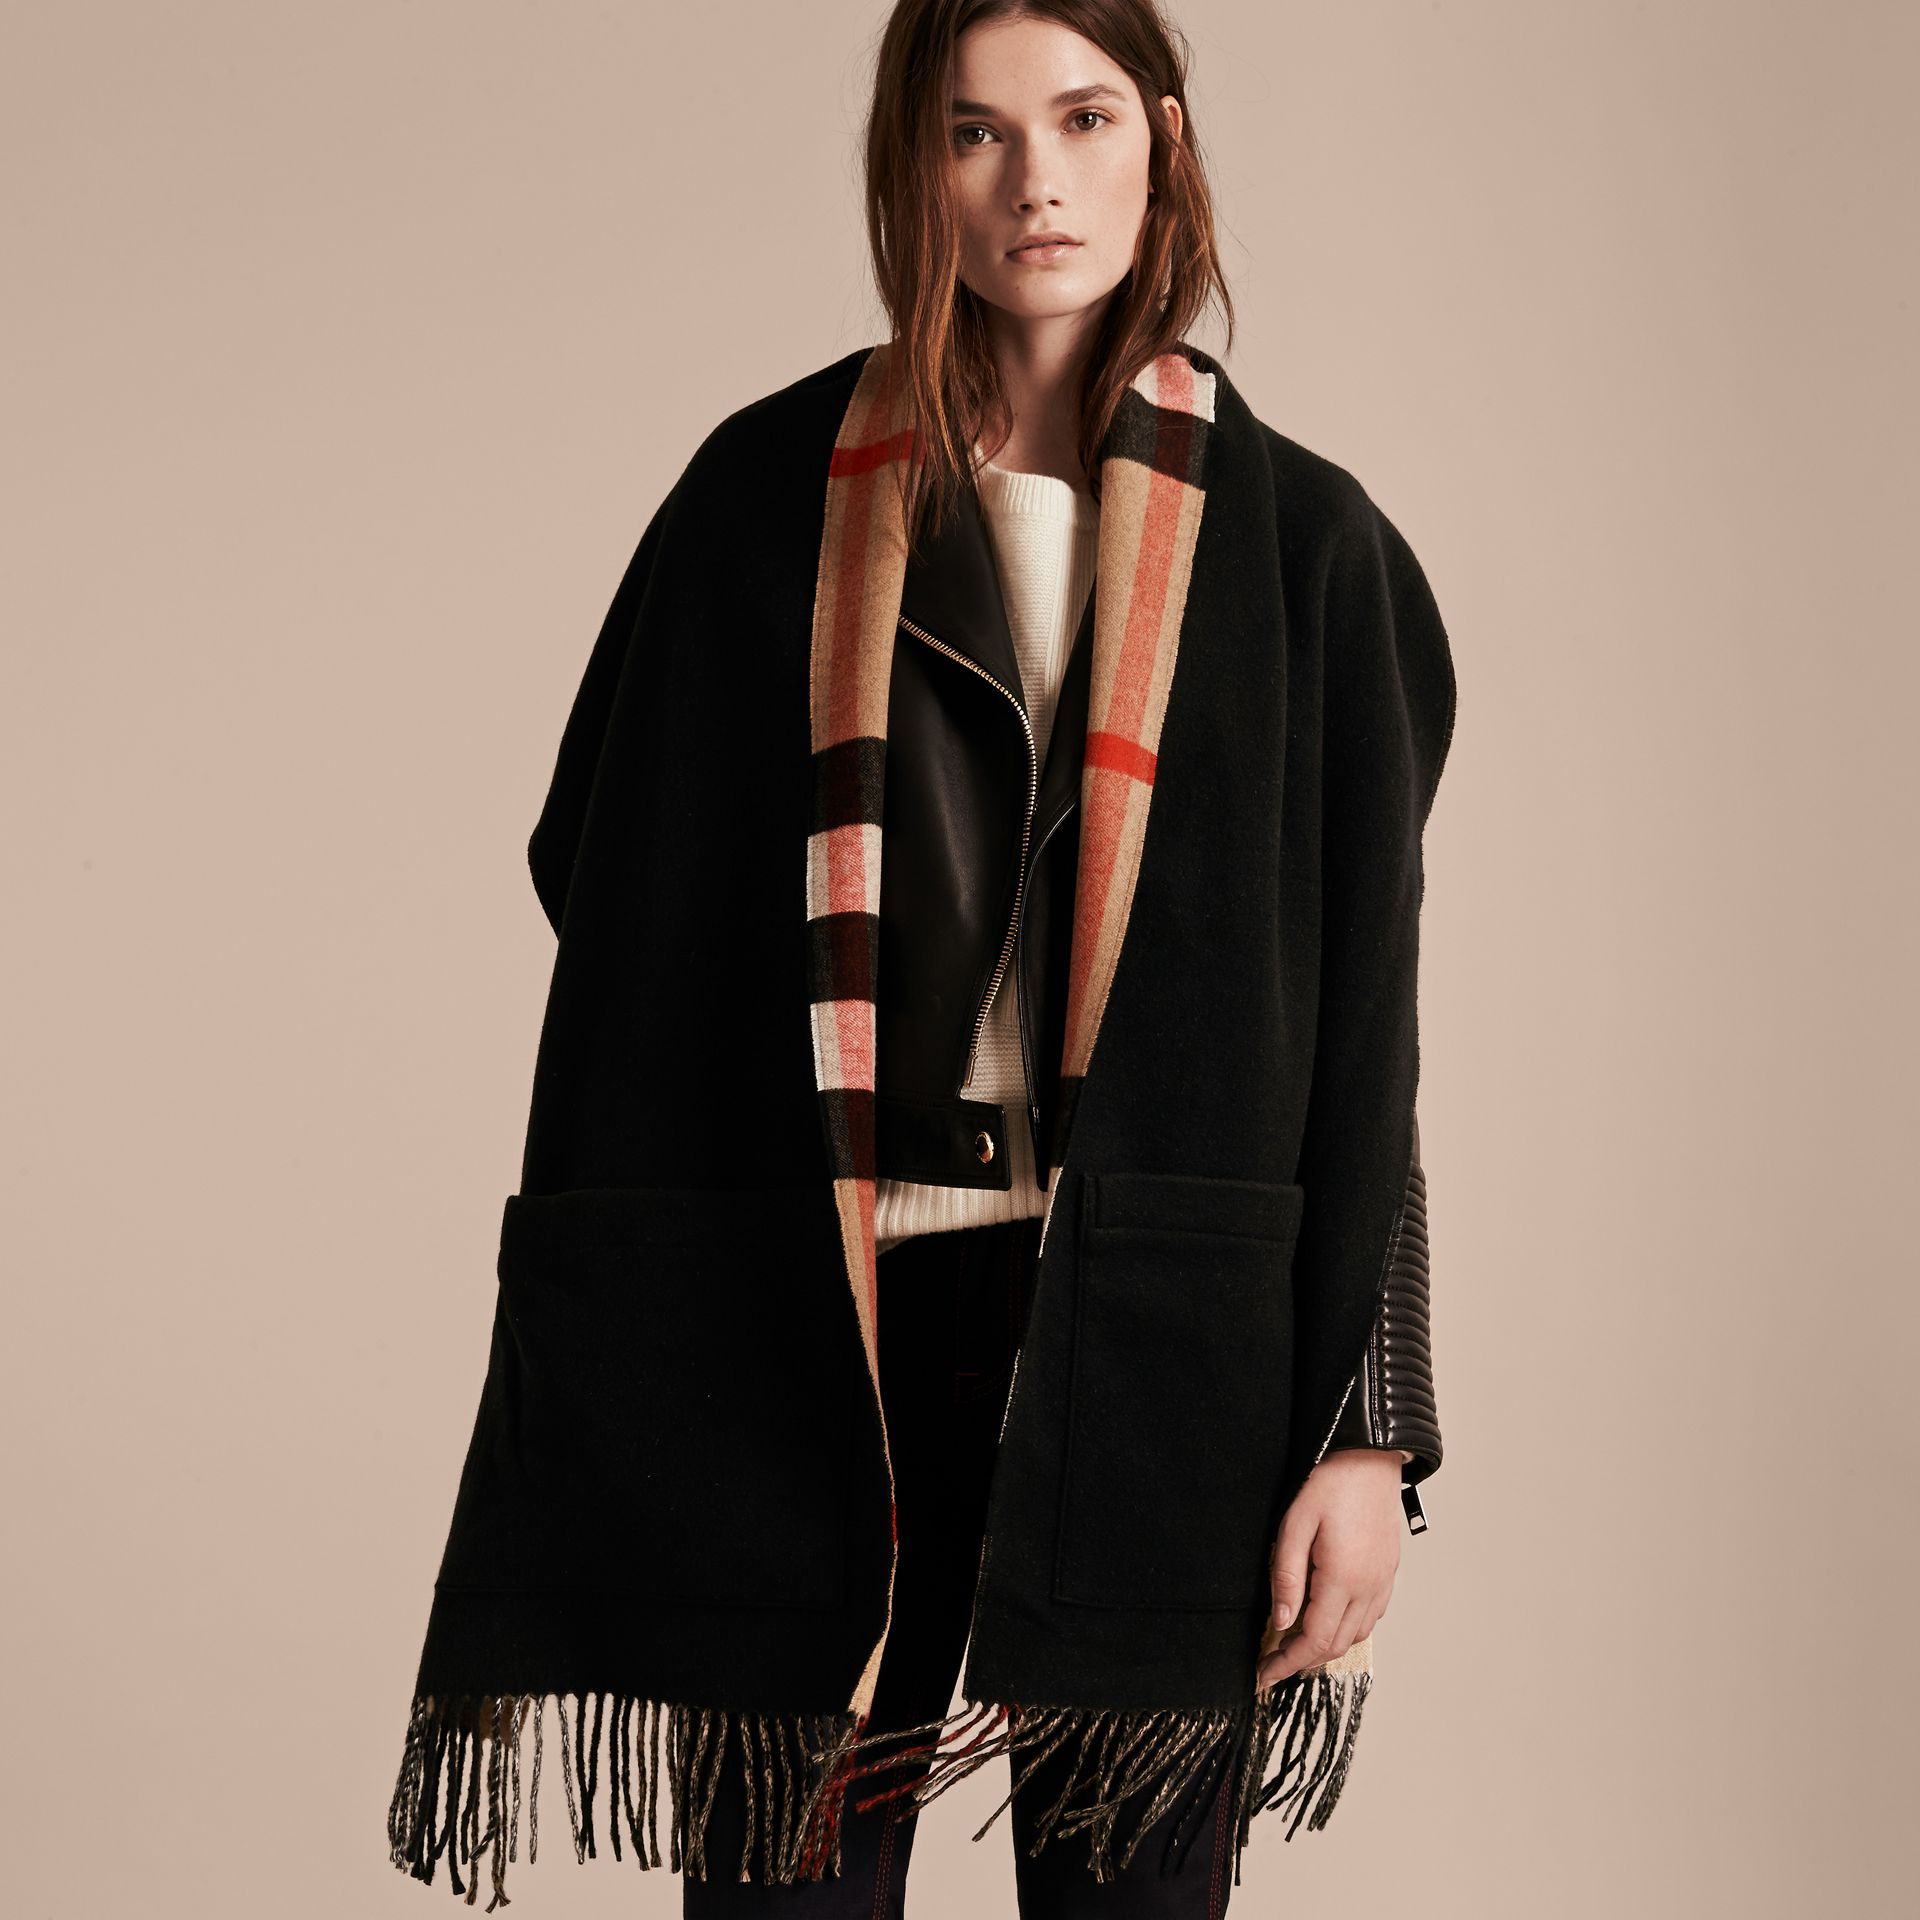 Check Lined Wool Cashmere Stole in Camel - Women | Burberry Australia - gallery image 1